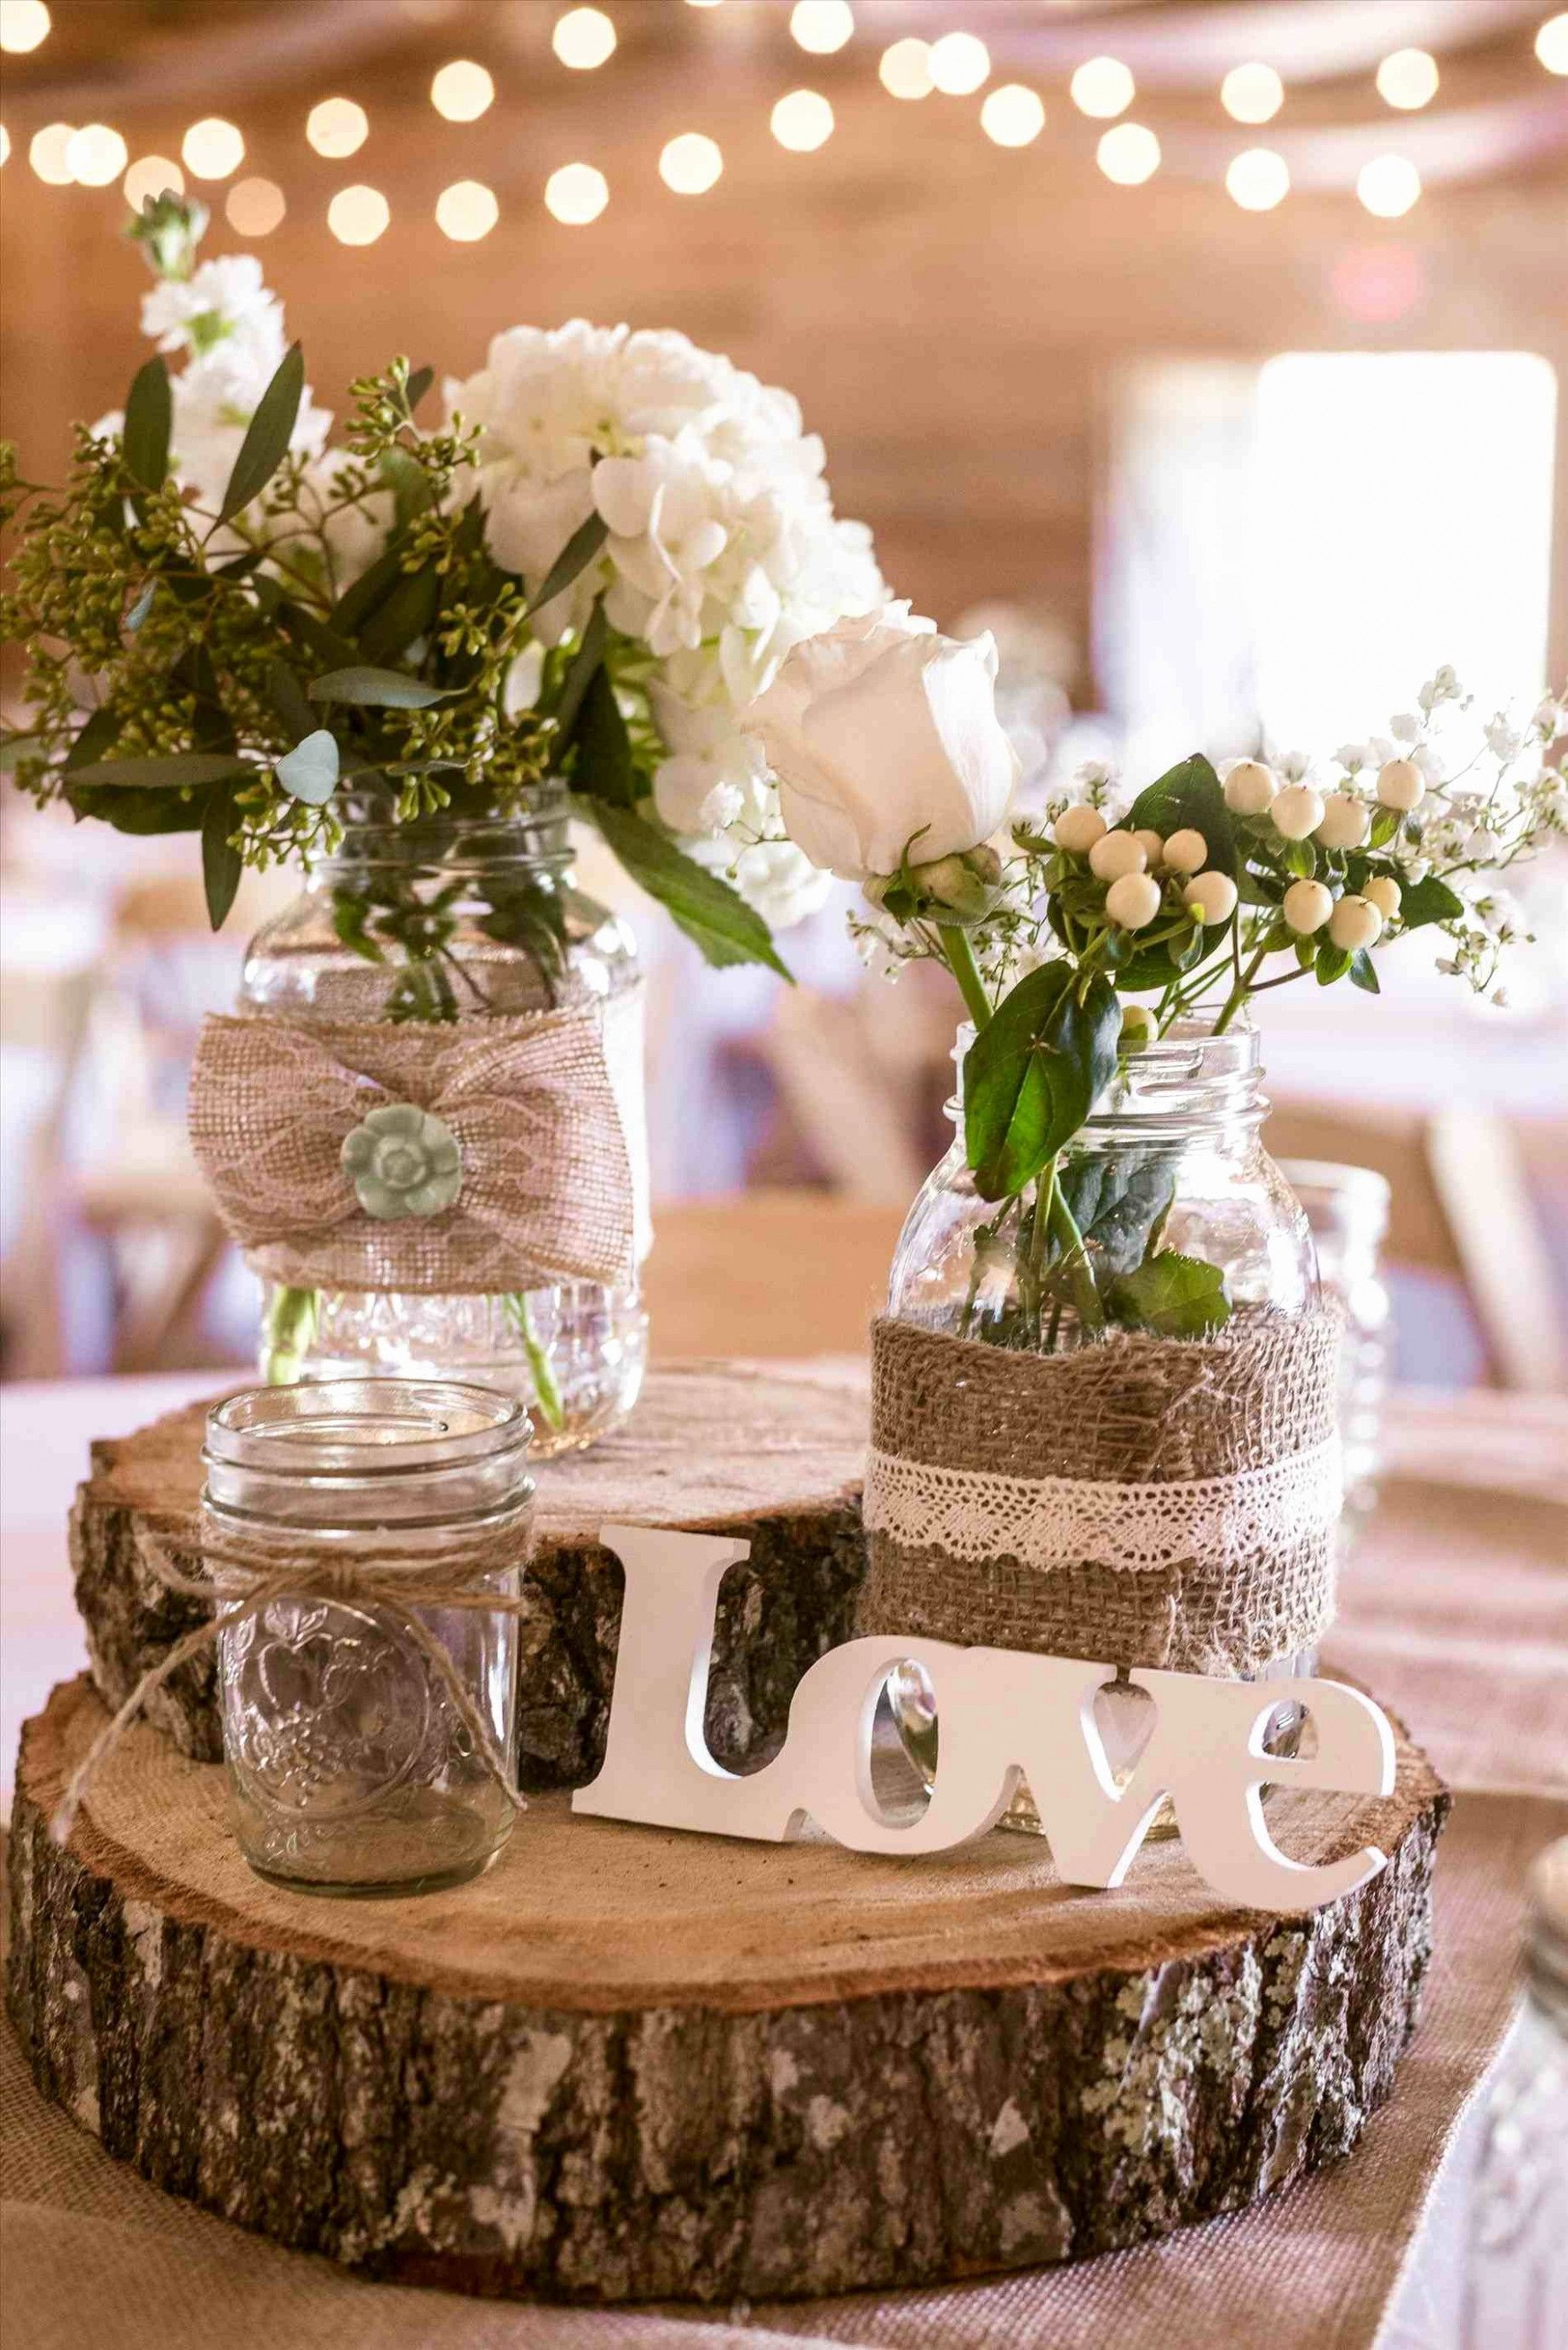 Homemade Rustic Wedding Decorations Easy Simple Rustic Wedding